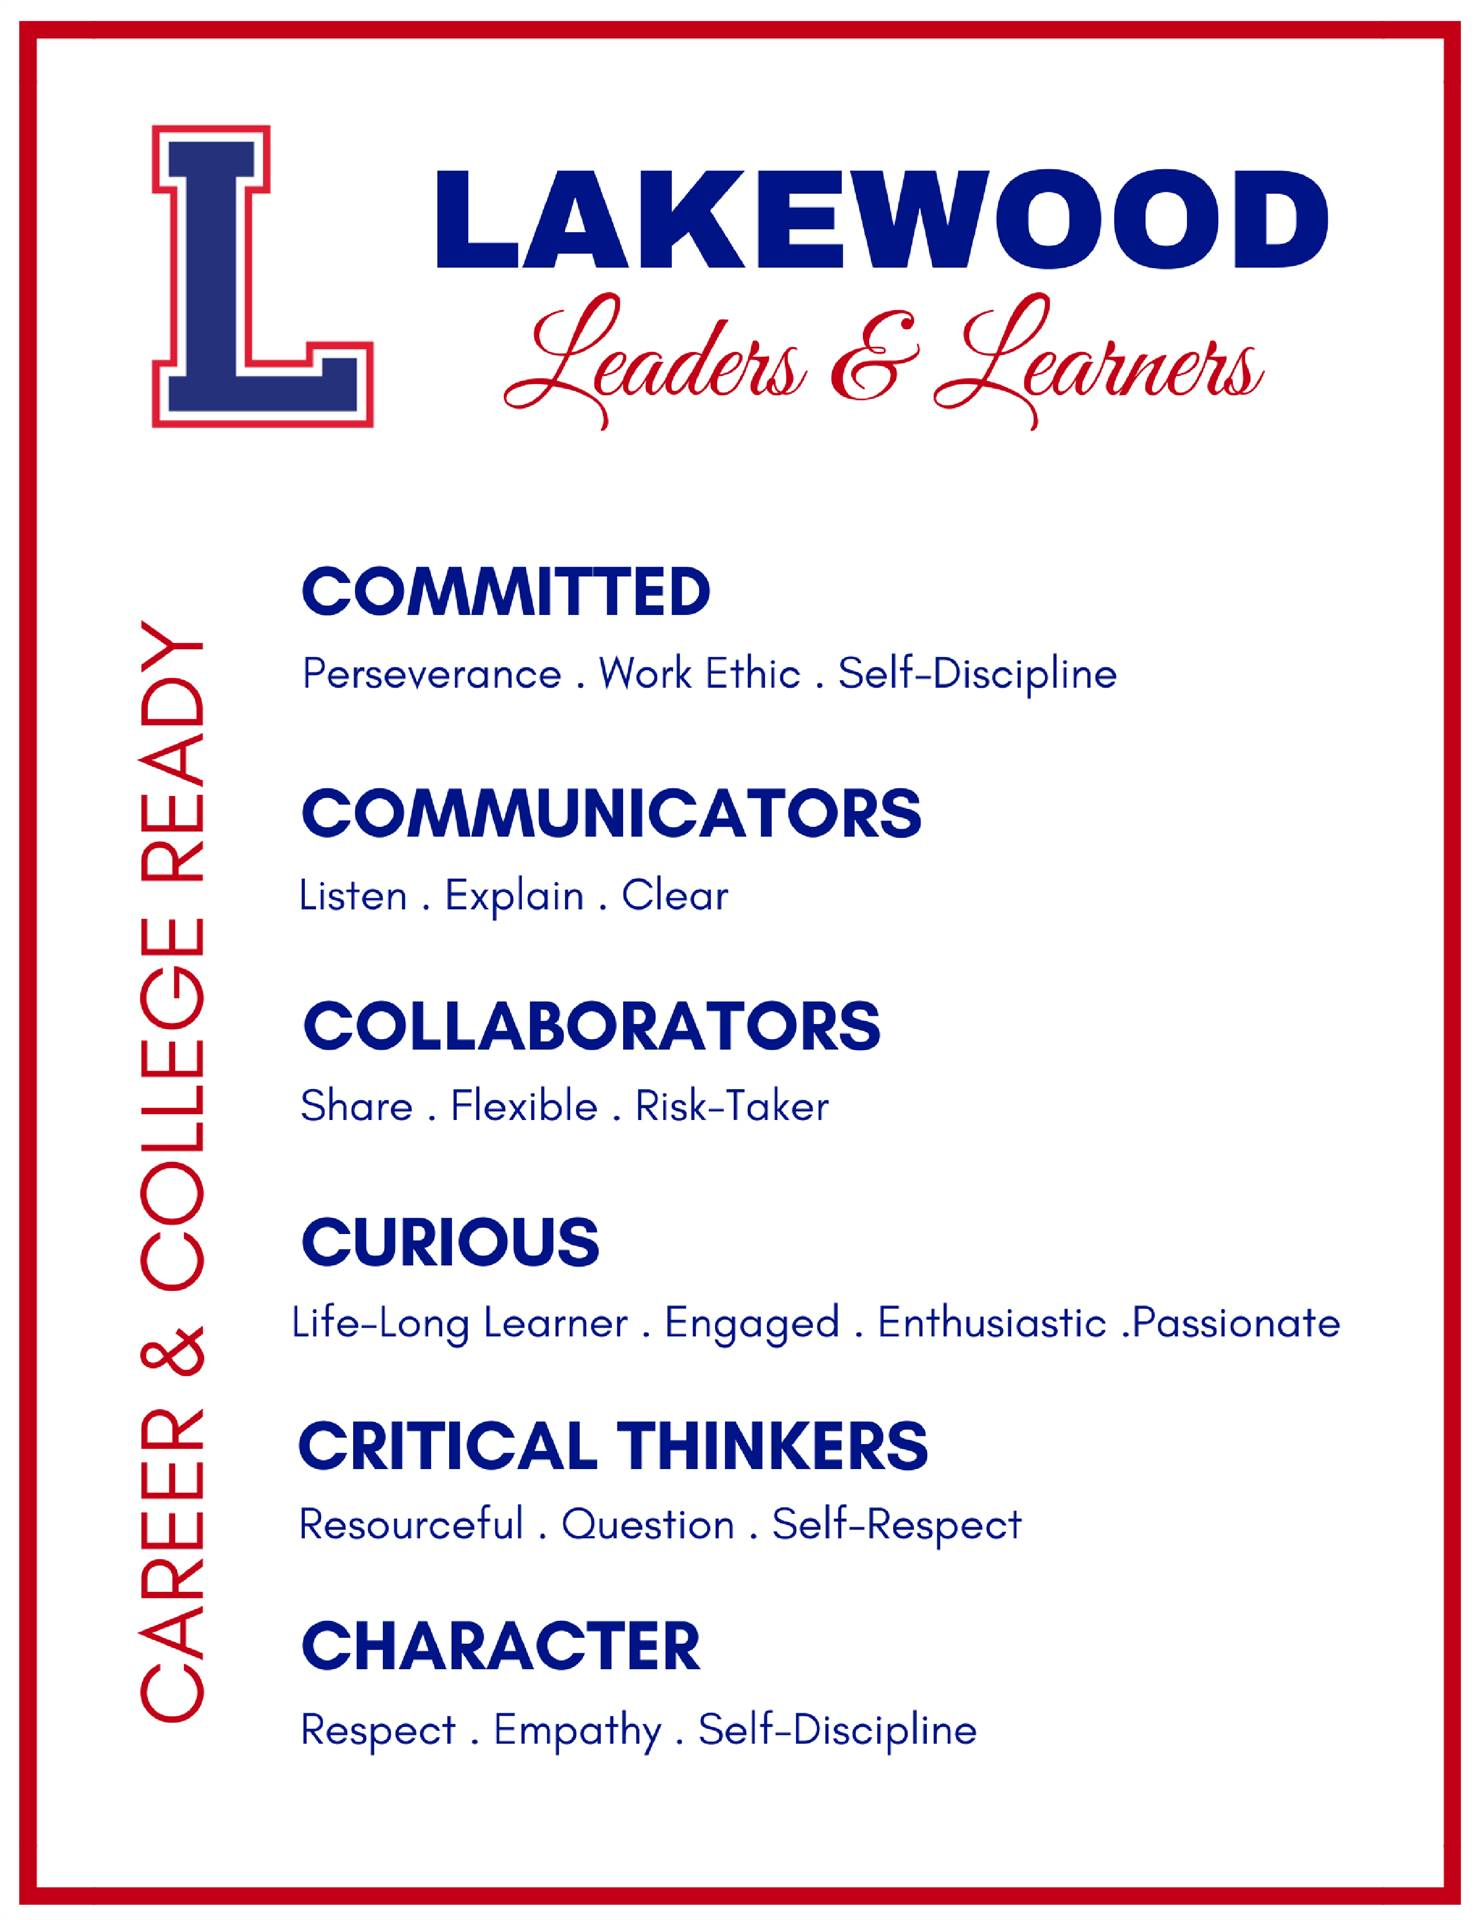 List of leadership habits of mind. Includes: committed, communicators, collaborators, curious, criti